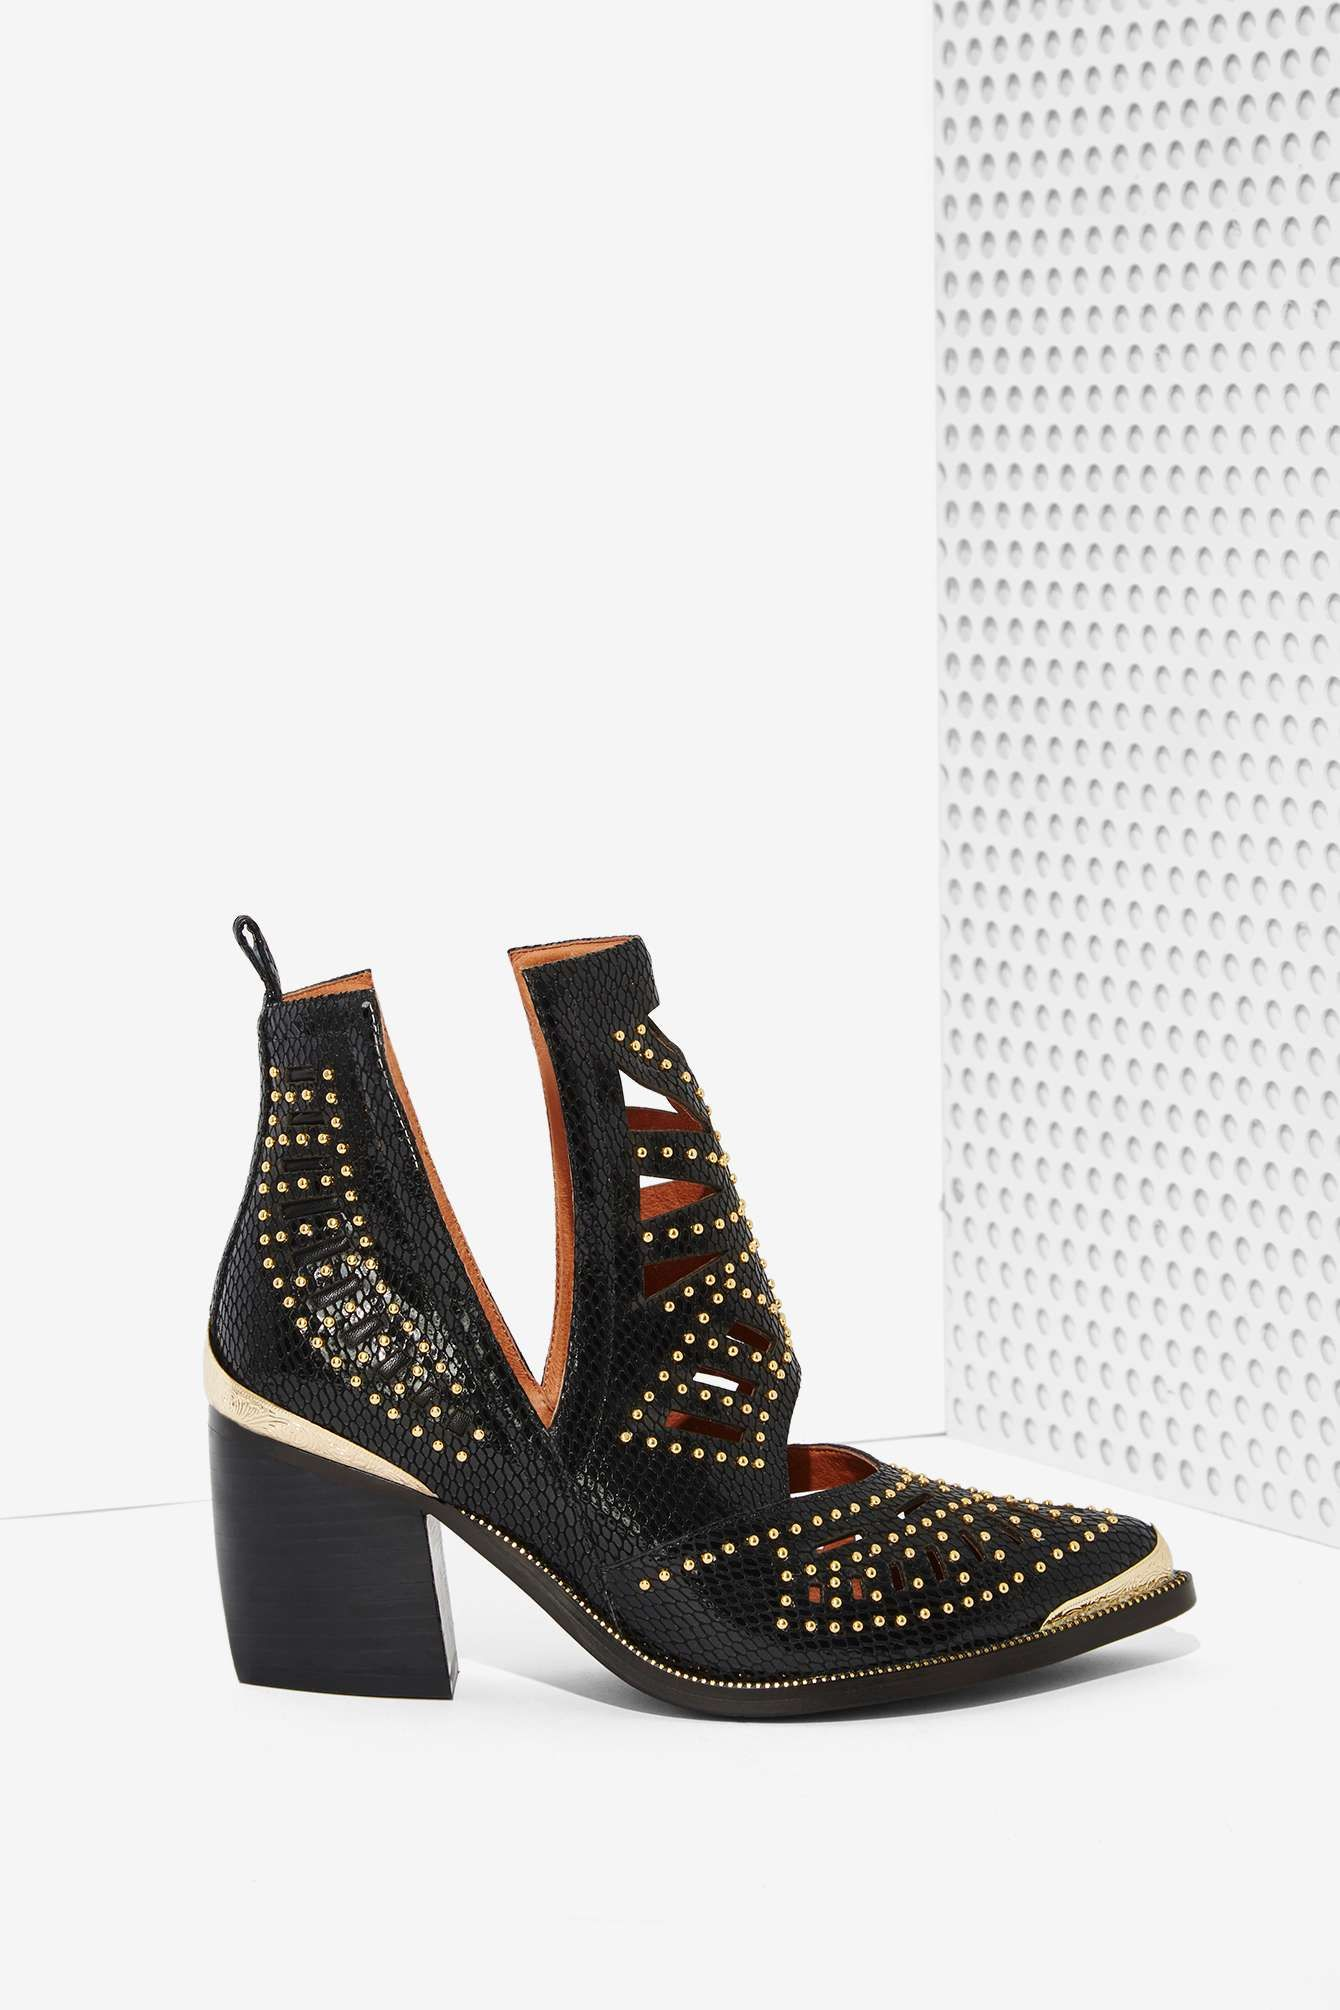 Jeffrey Campbell Maceo Cutout Leather Boot  Shop Shoes at Nasty Gal